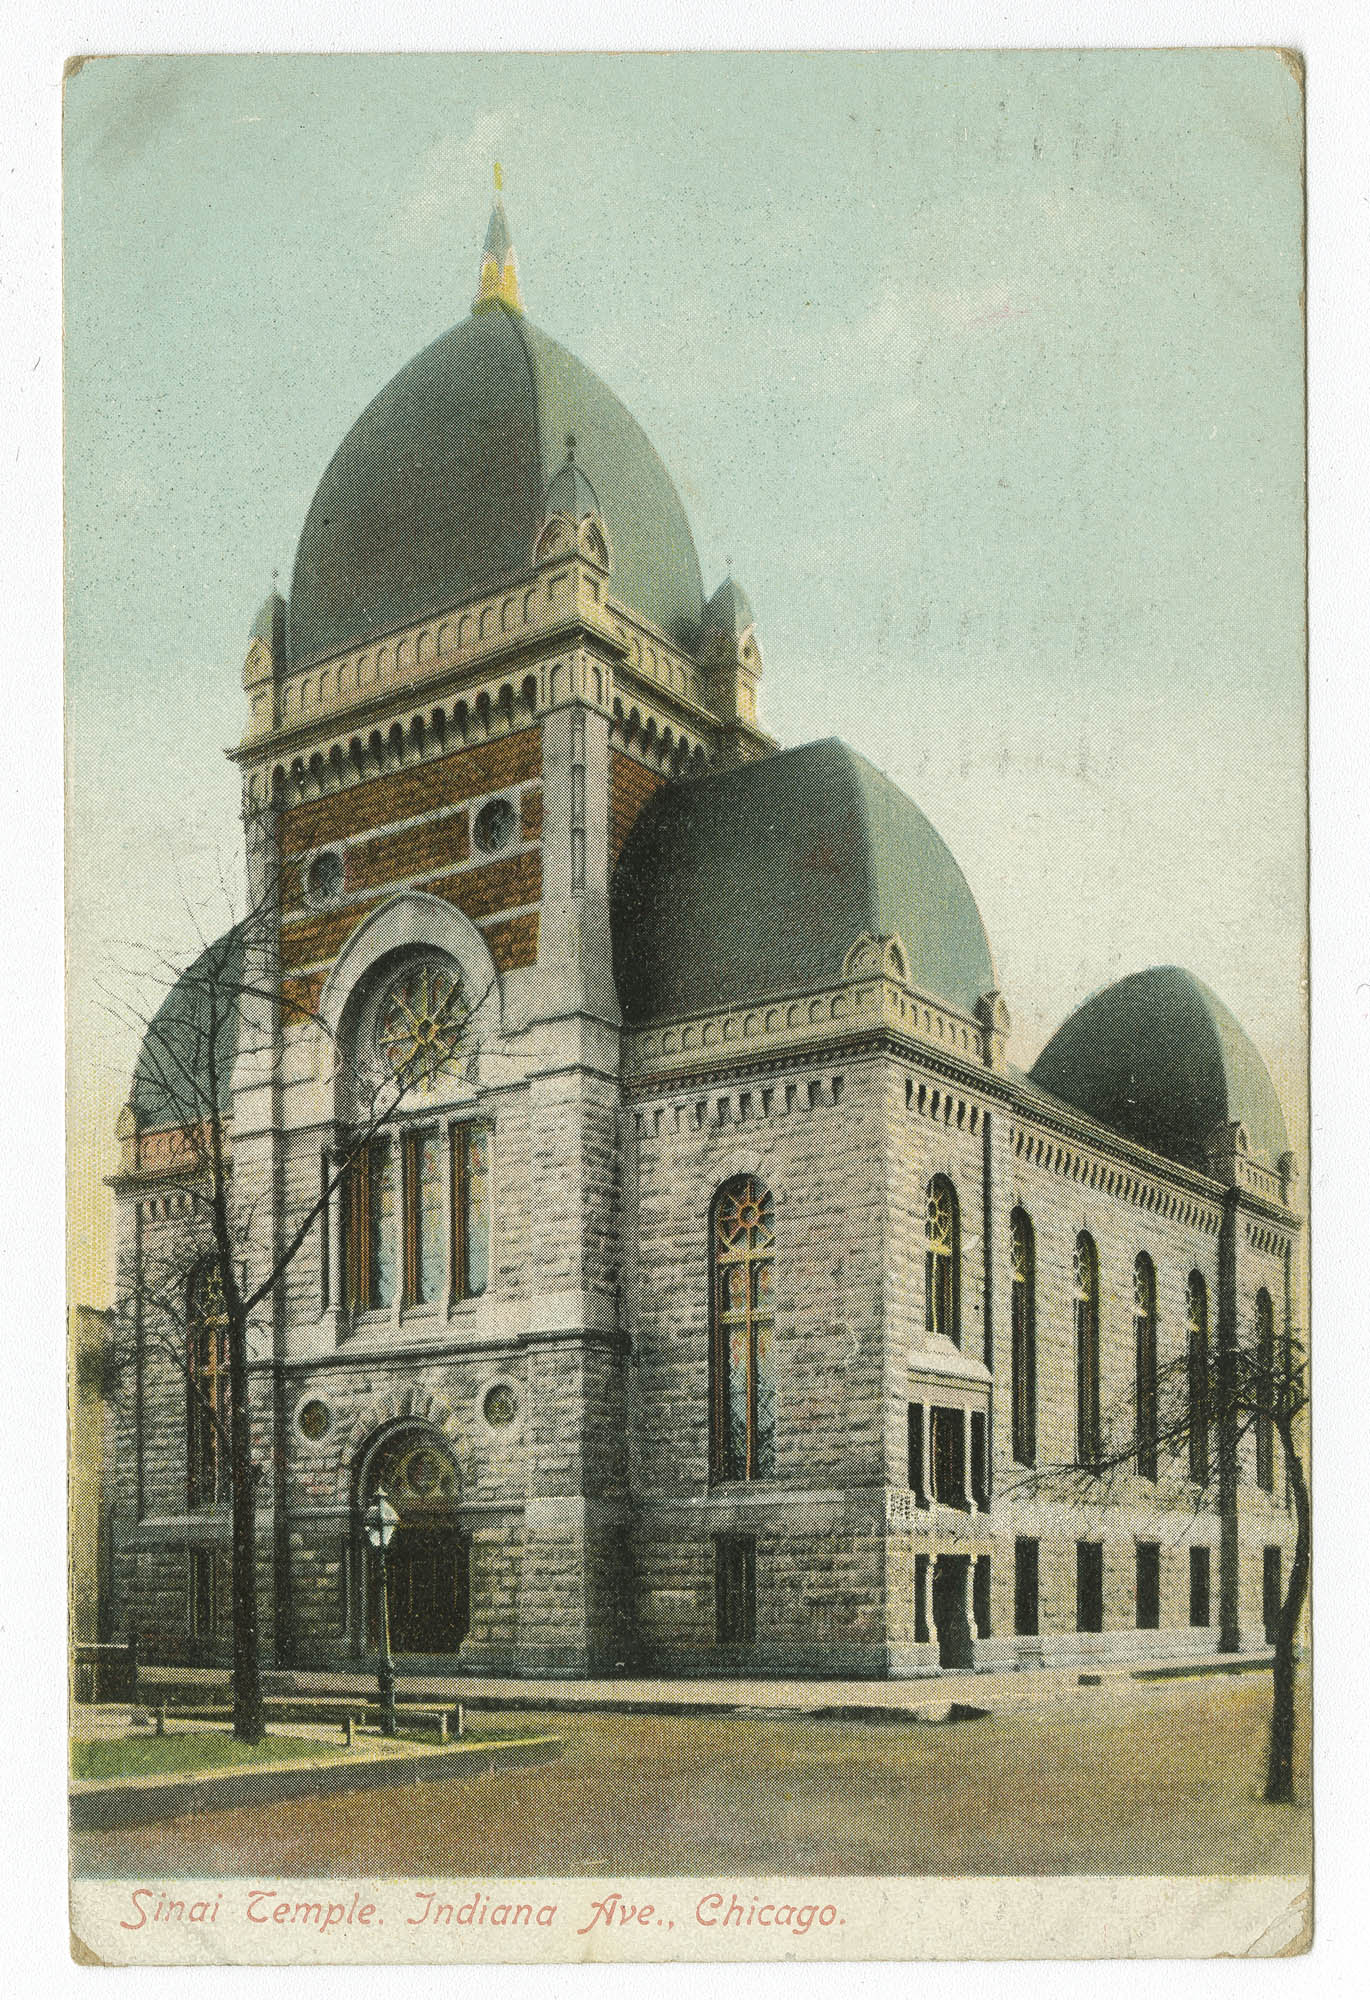 Sinai Temple, Indiana Ave., Chicago